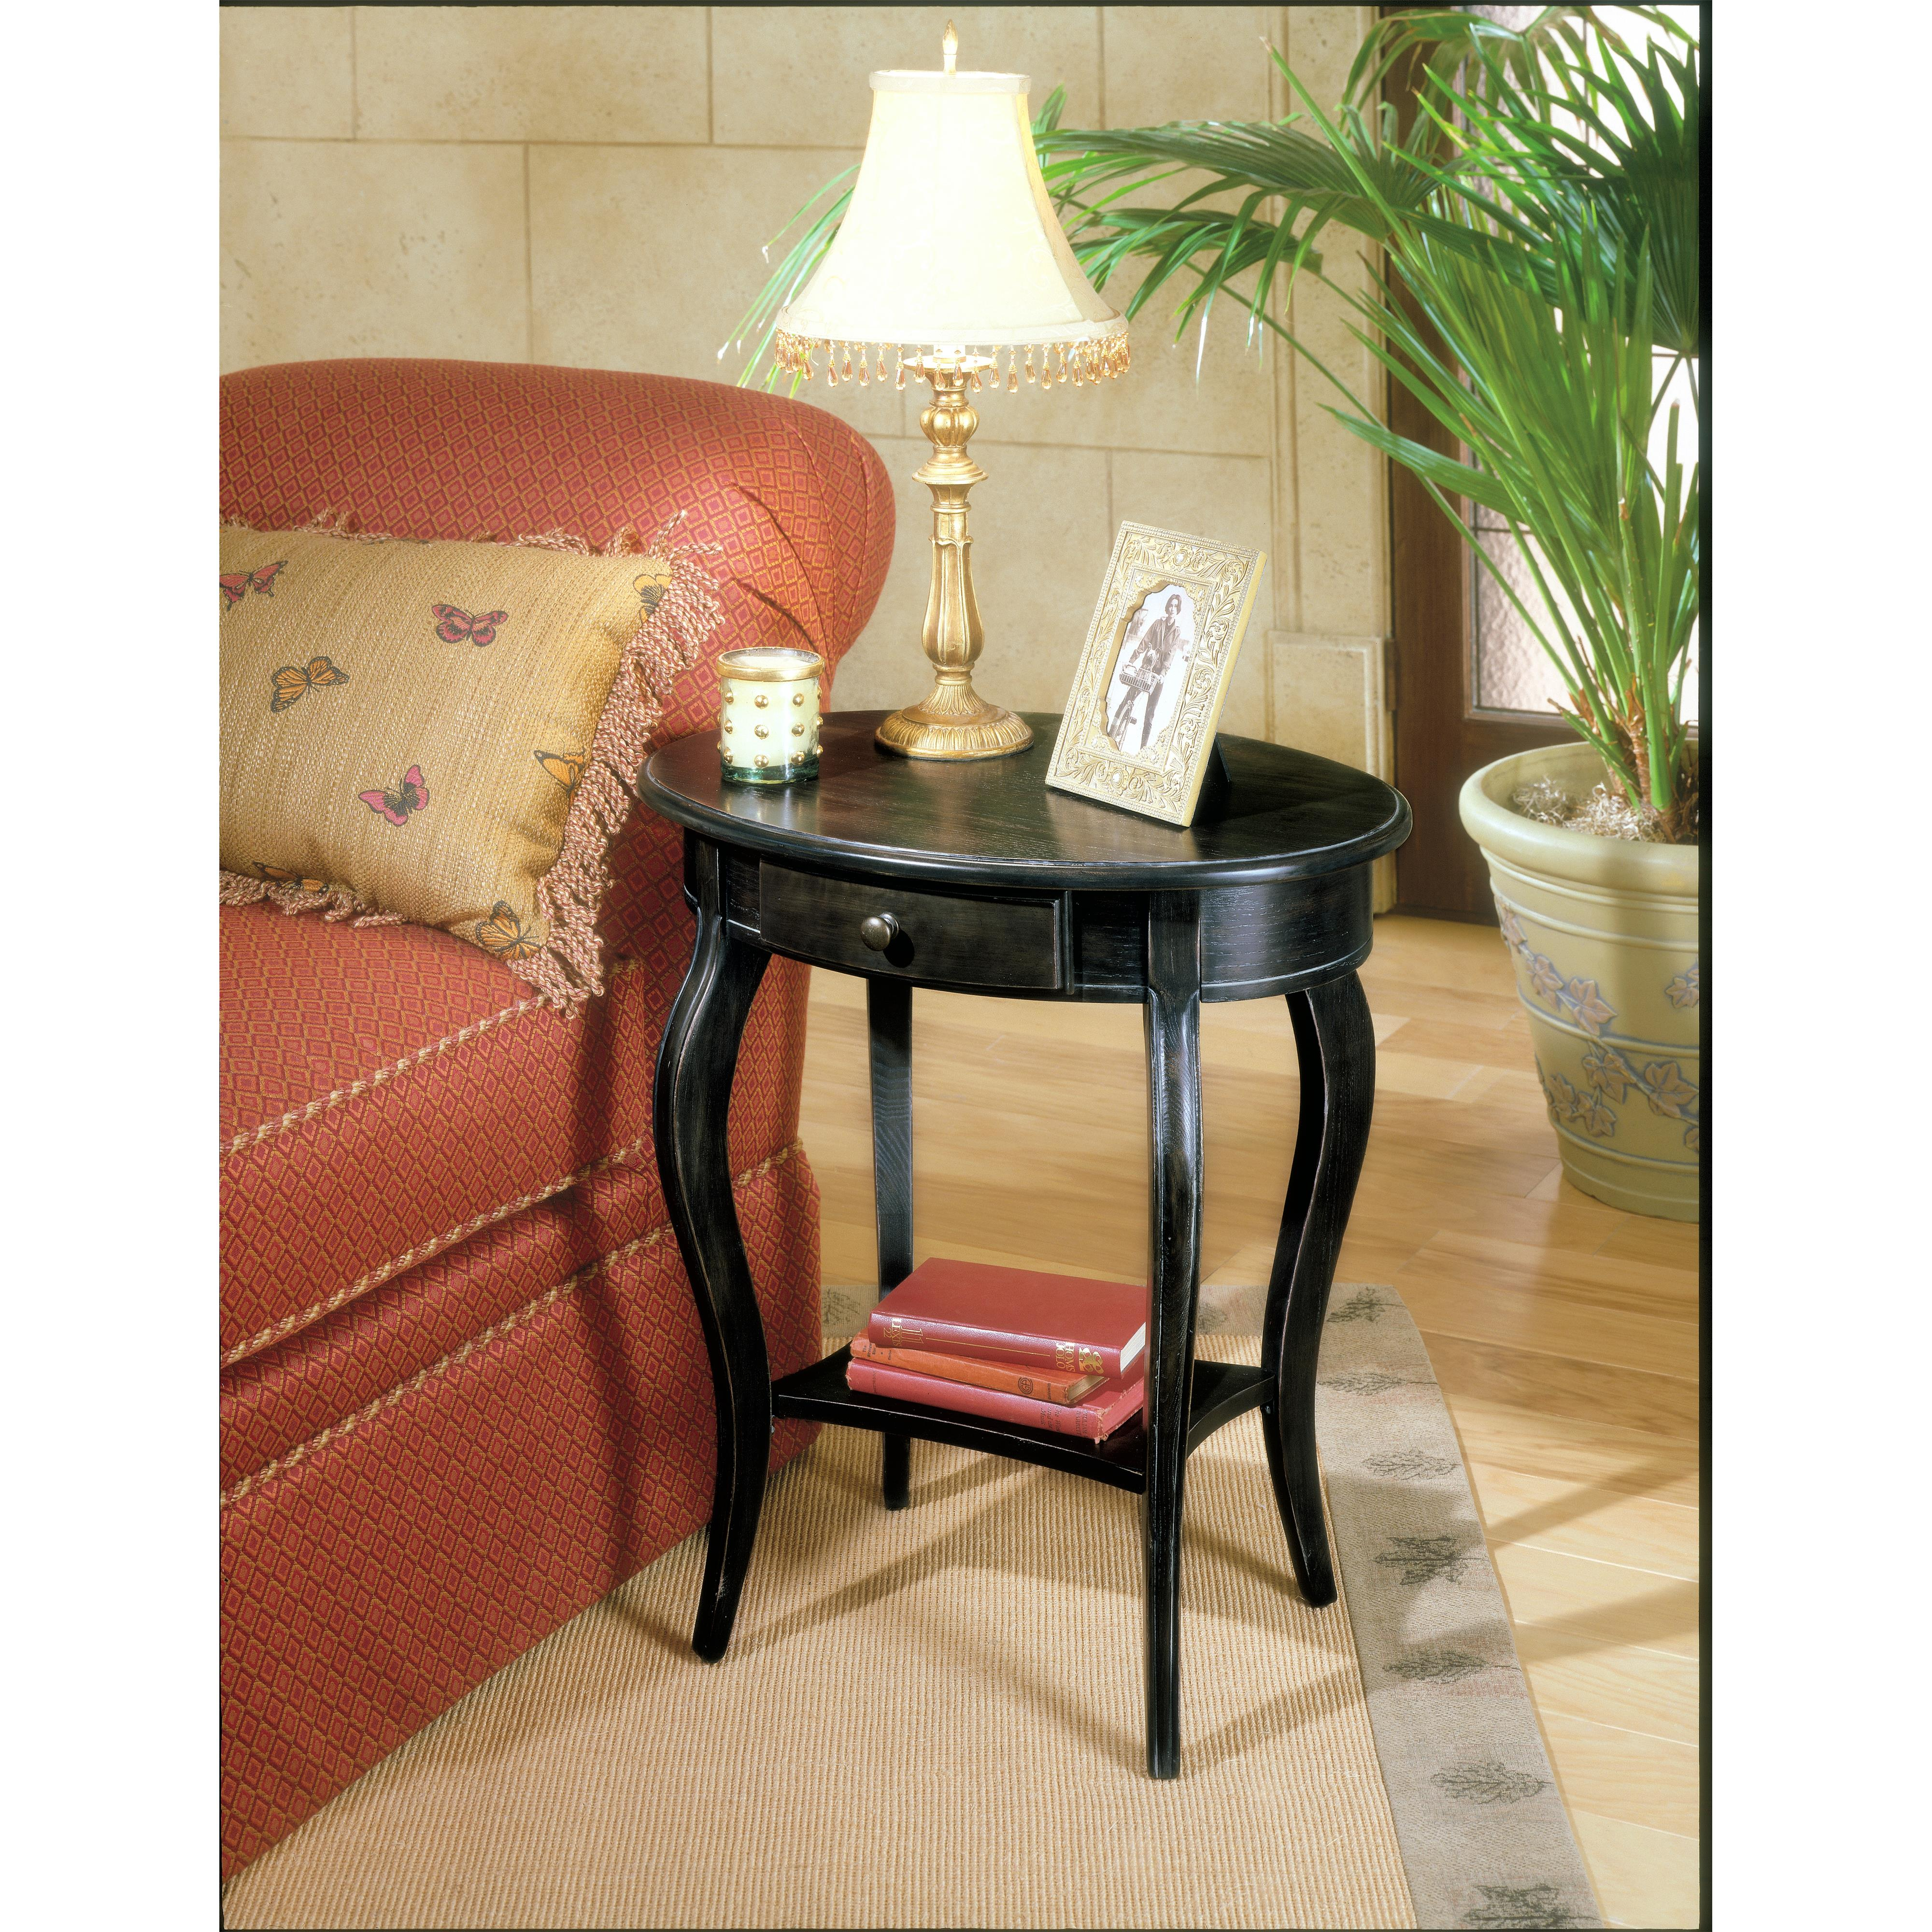 Butler Specialty Company Masterpiece  Oval Accent Table - Item Number: 532005